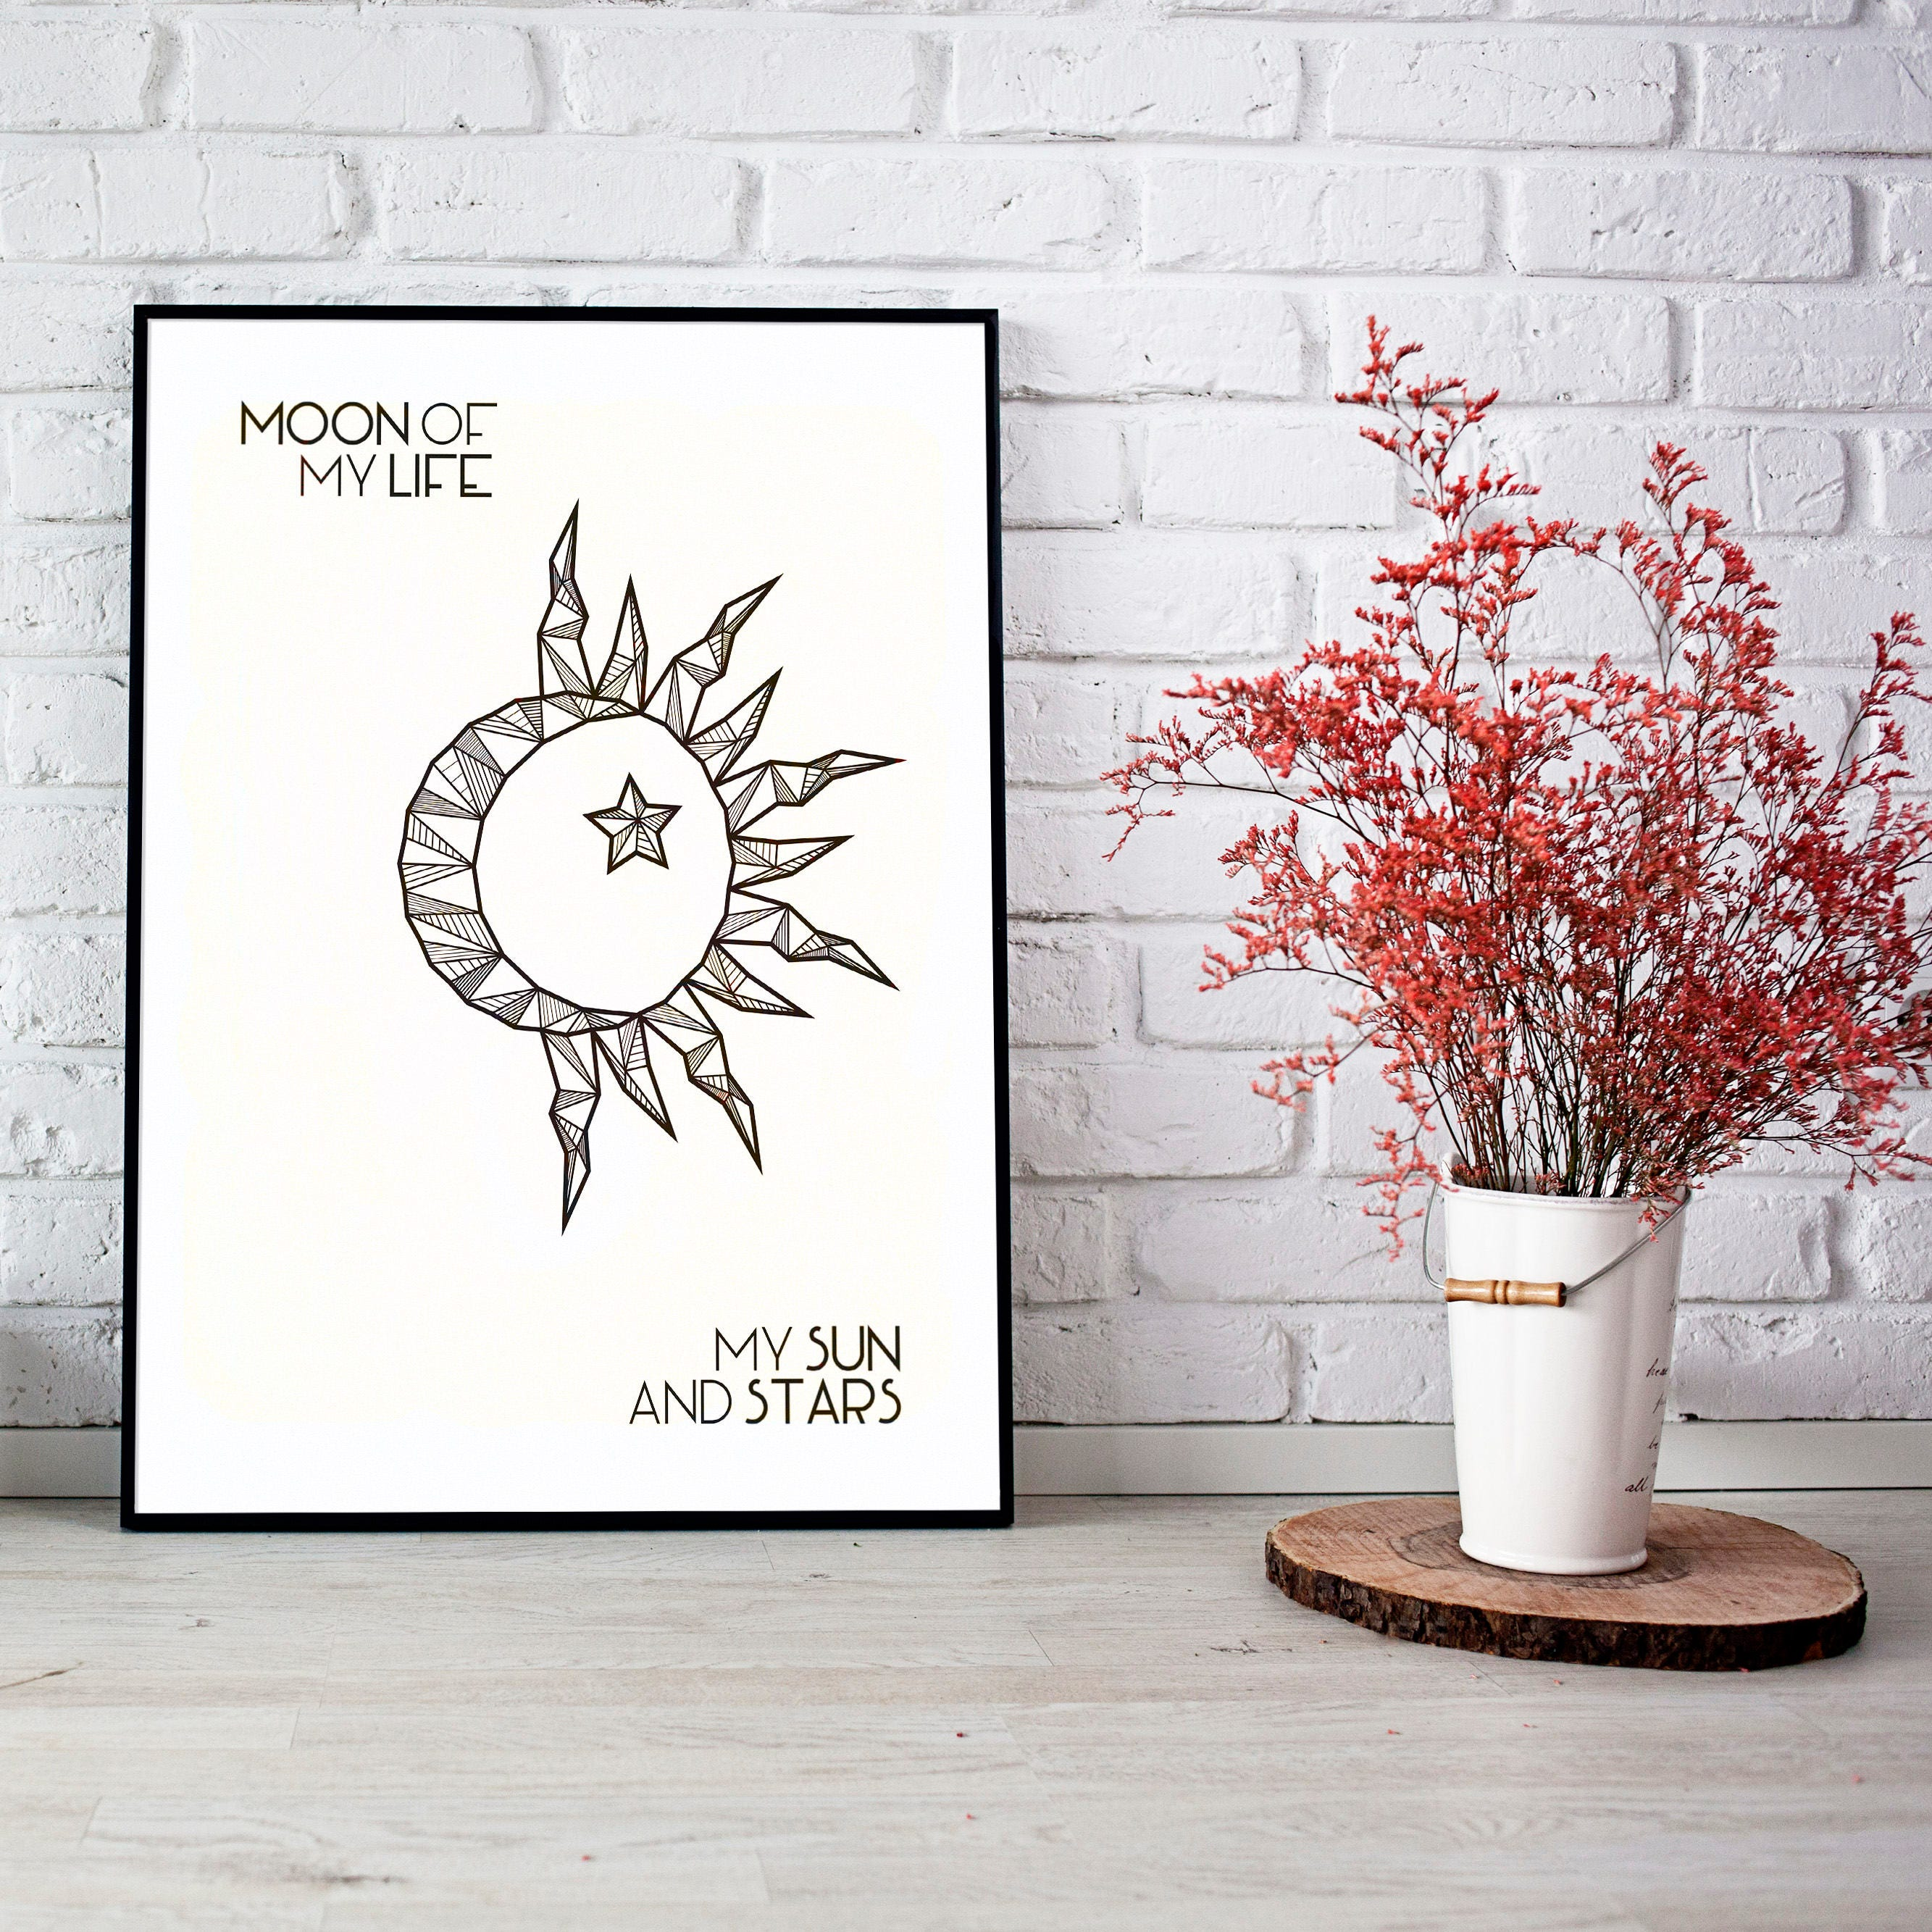 Moon Of My Life My Sun And Stars Game Of Thrones Print Etsy